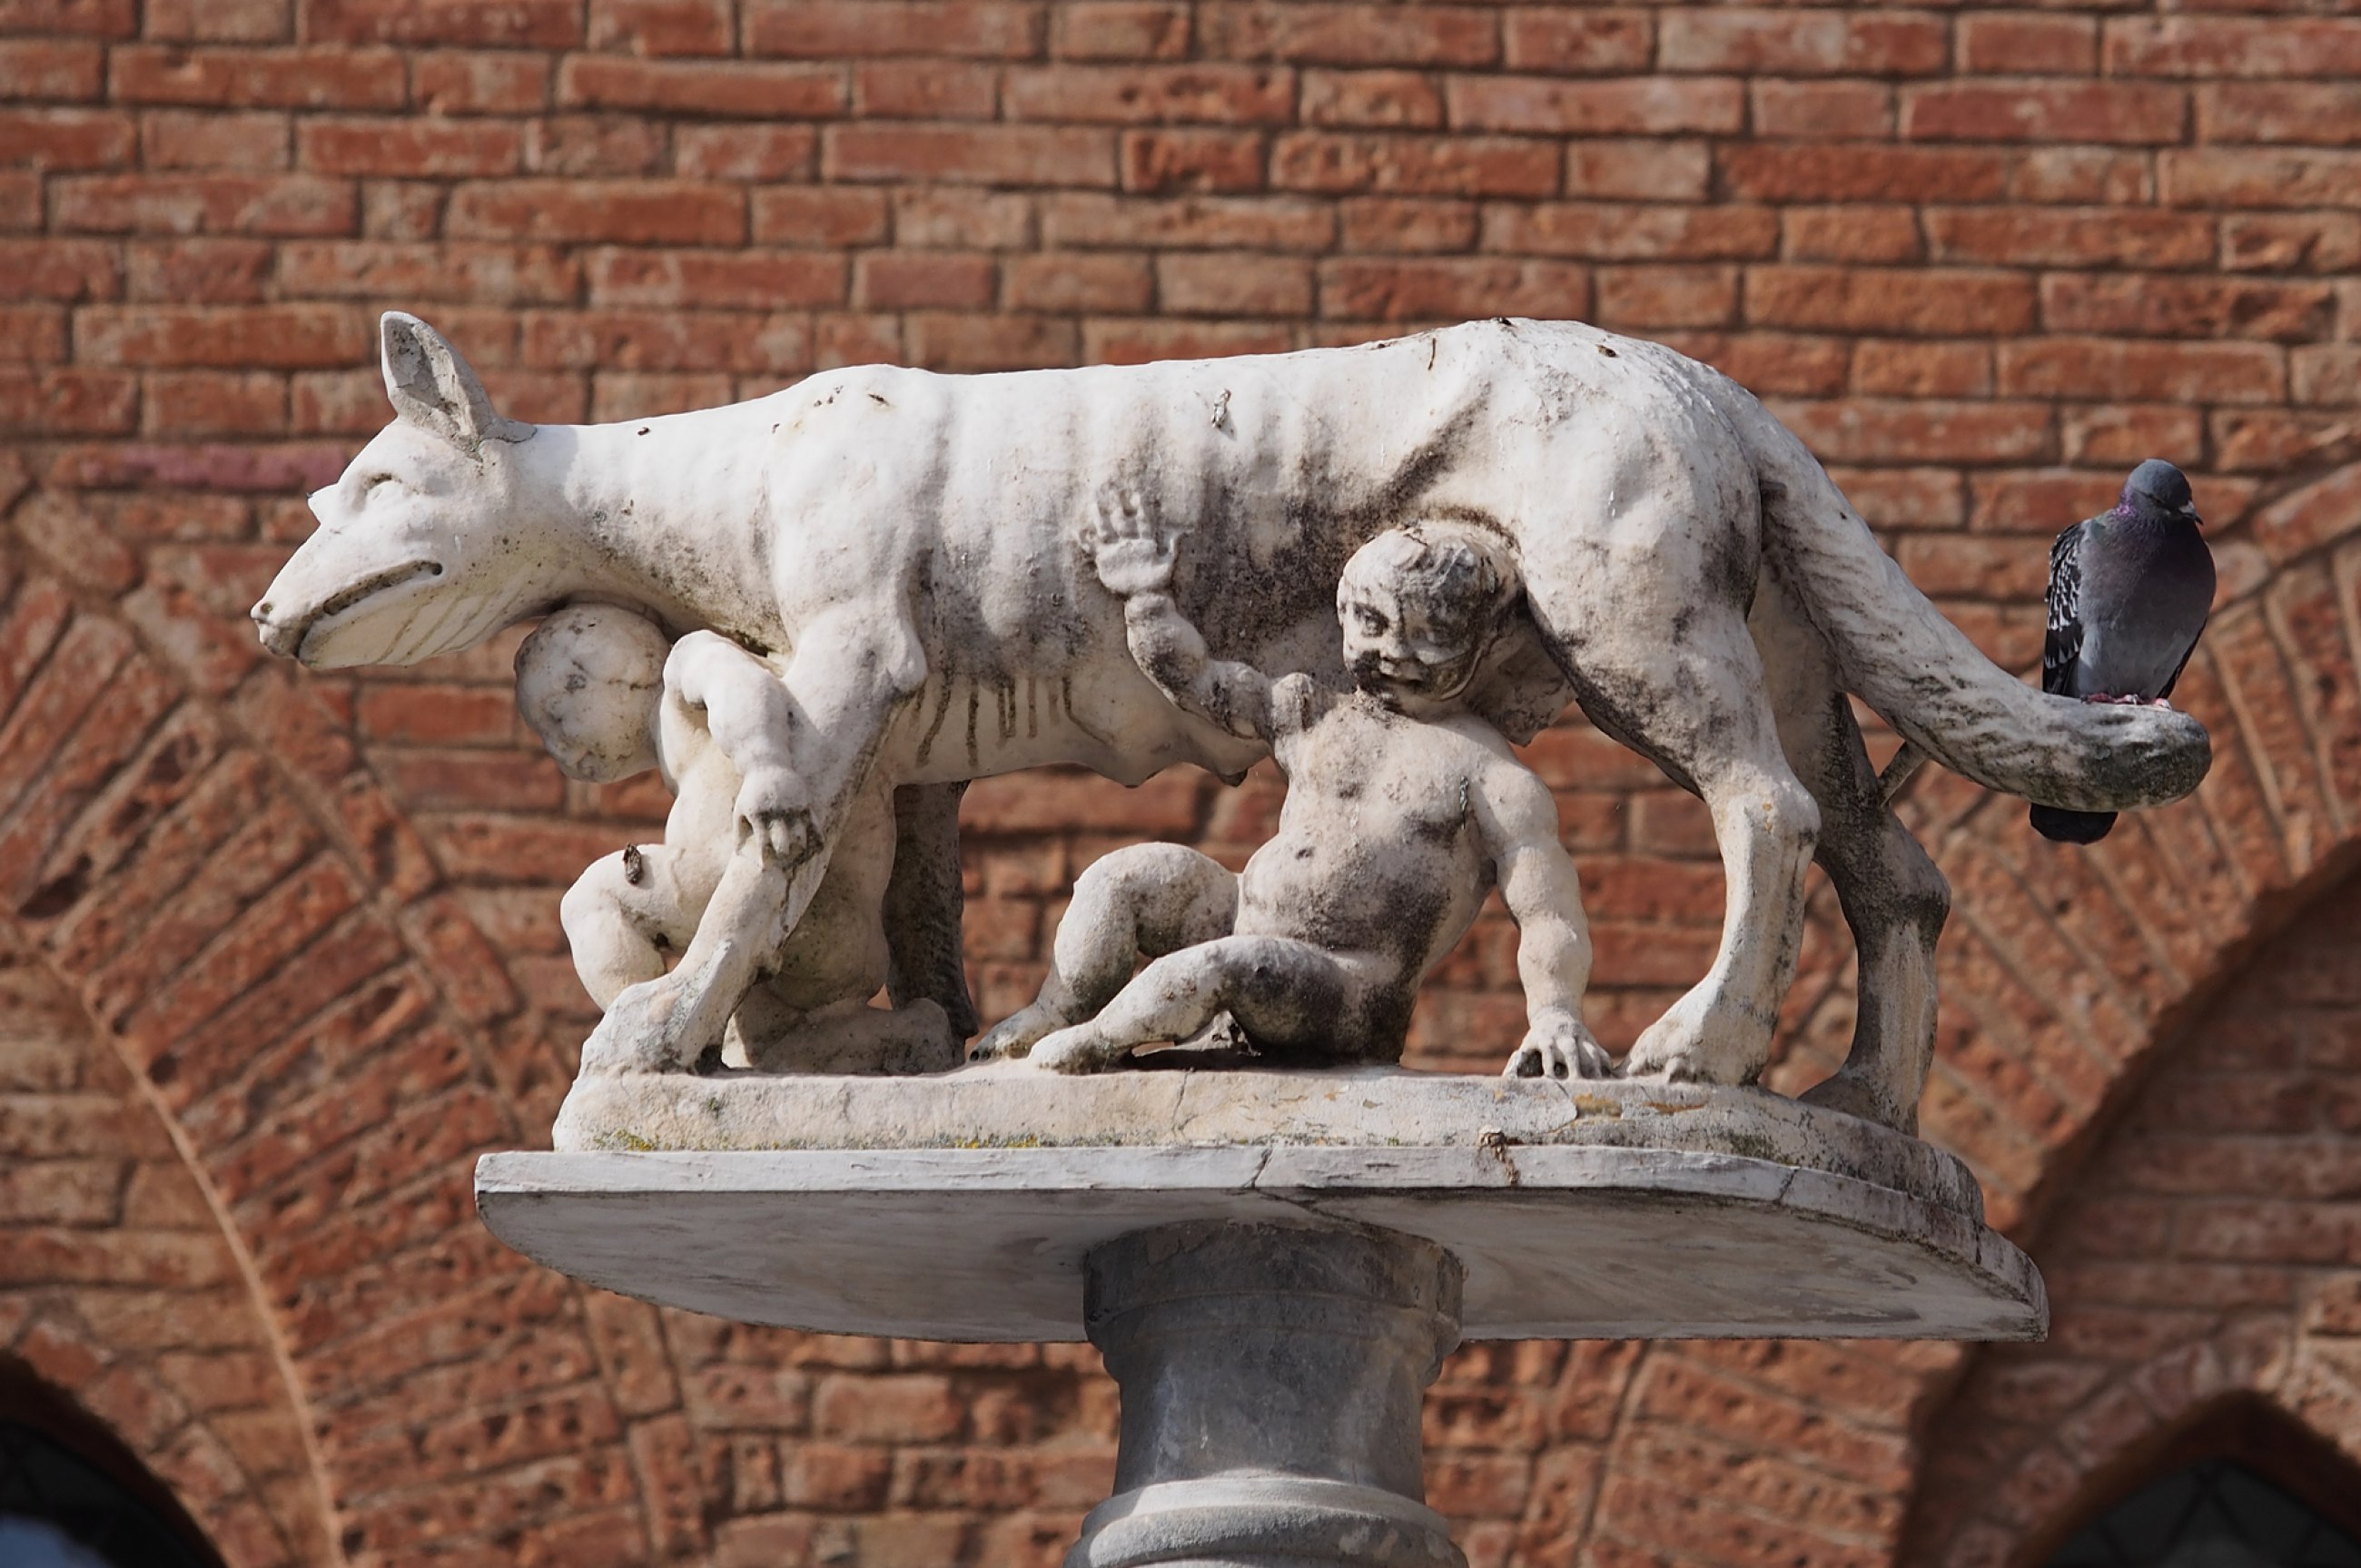 https://bubo.sk/uploads/galleries/5053/capitoline-wolf-at-siena-duomo.jpg